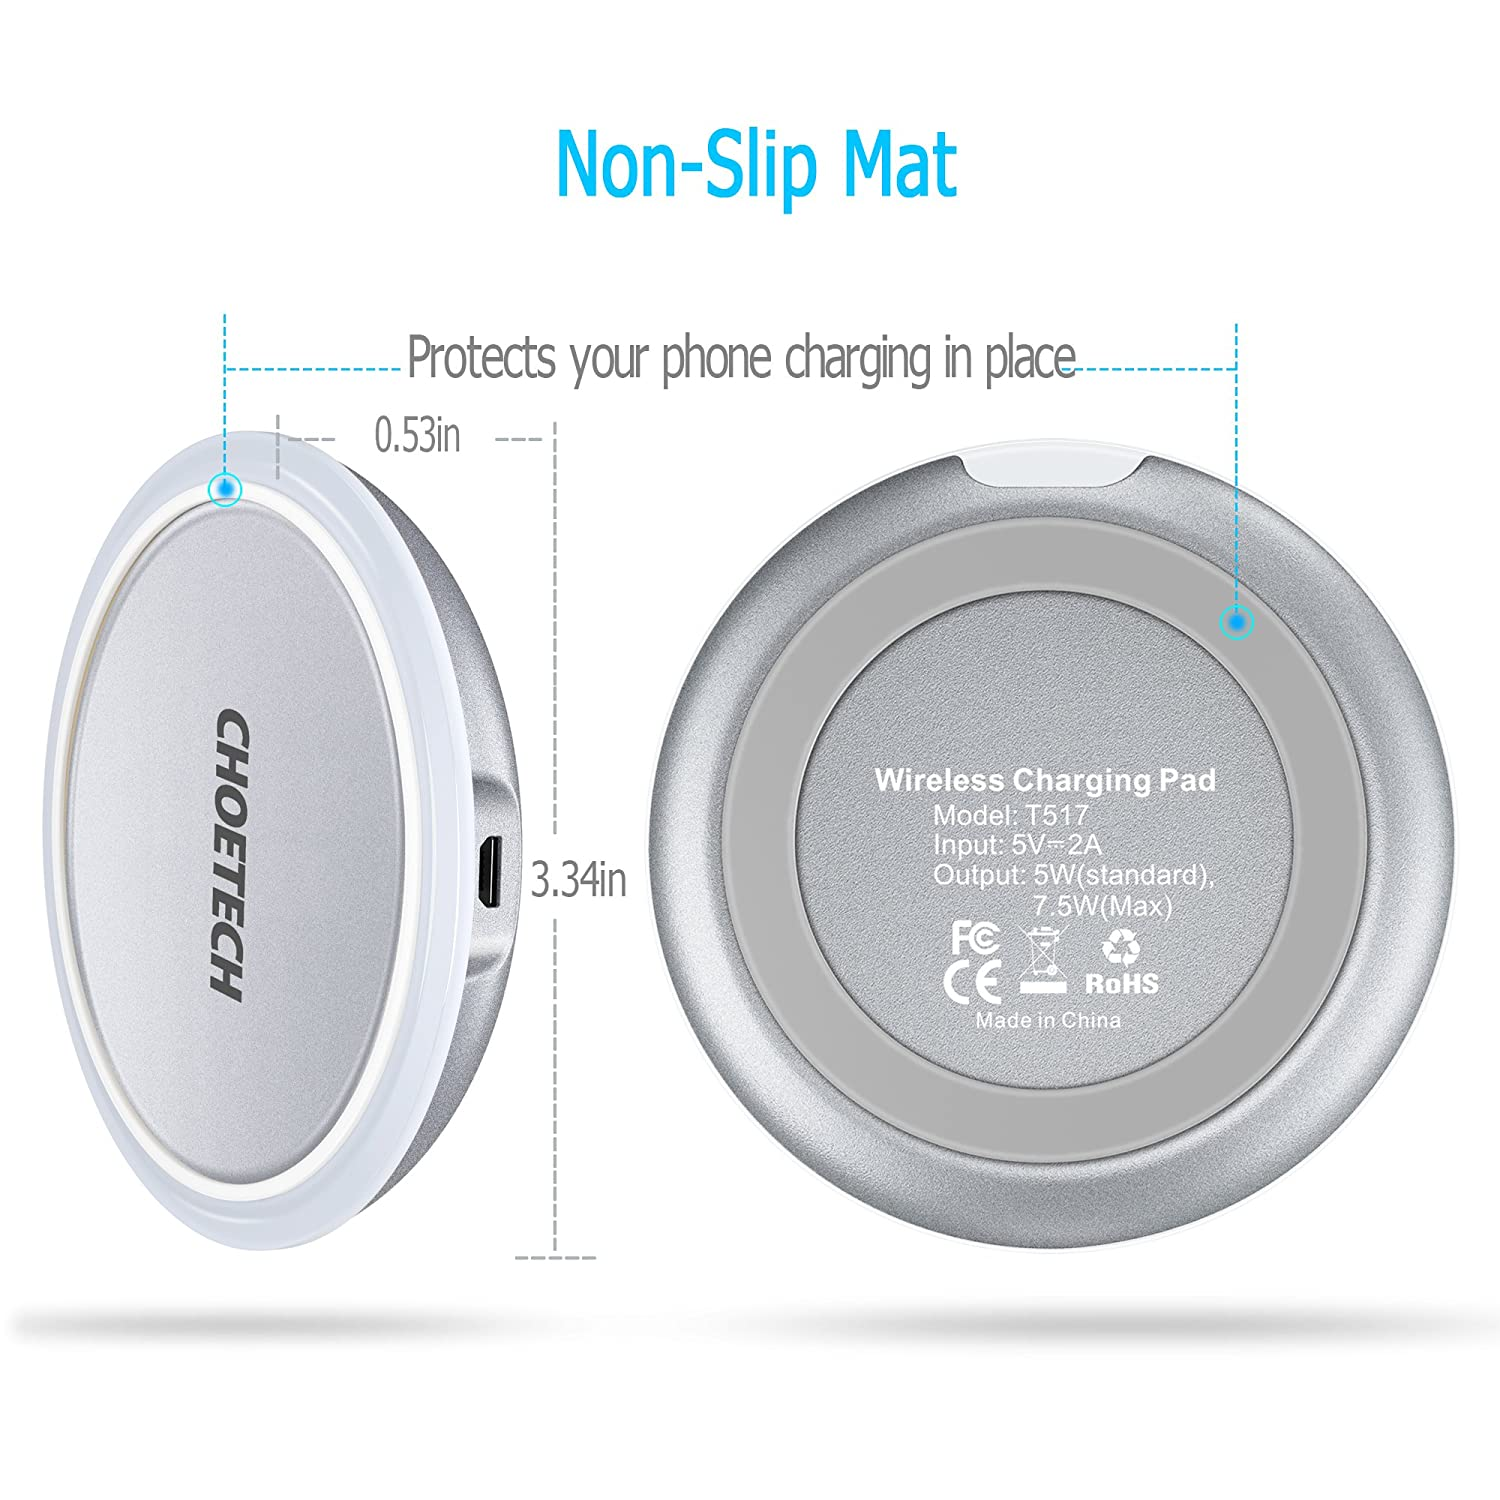 Wireless Charger CHOETECH Qi Wireless Charging Pad with Smart Lighting Sensor Compatible with iPhone XR,XS,XS Max,X,8,8 Plus,Samsung Galaxy S9 S9 Plus Note 8,S8,S8 Plus Other Qi-Enabled Devices